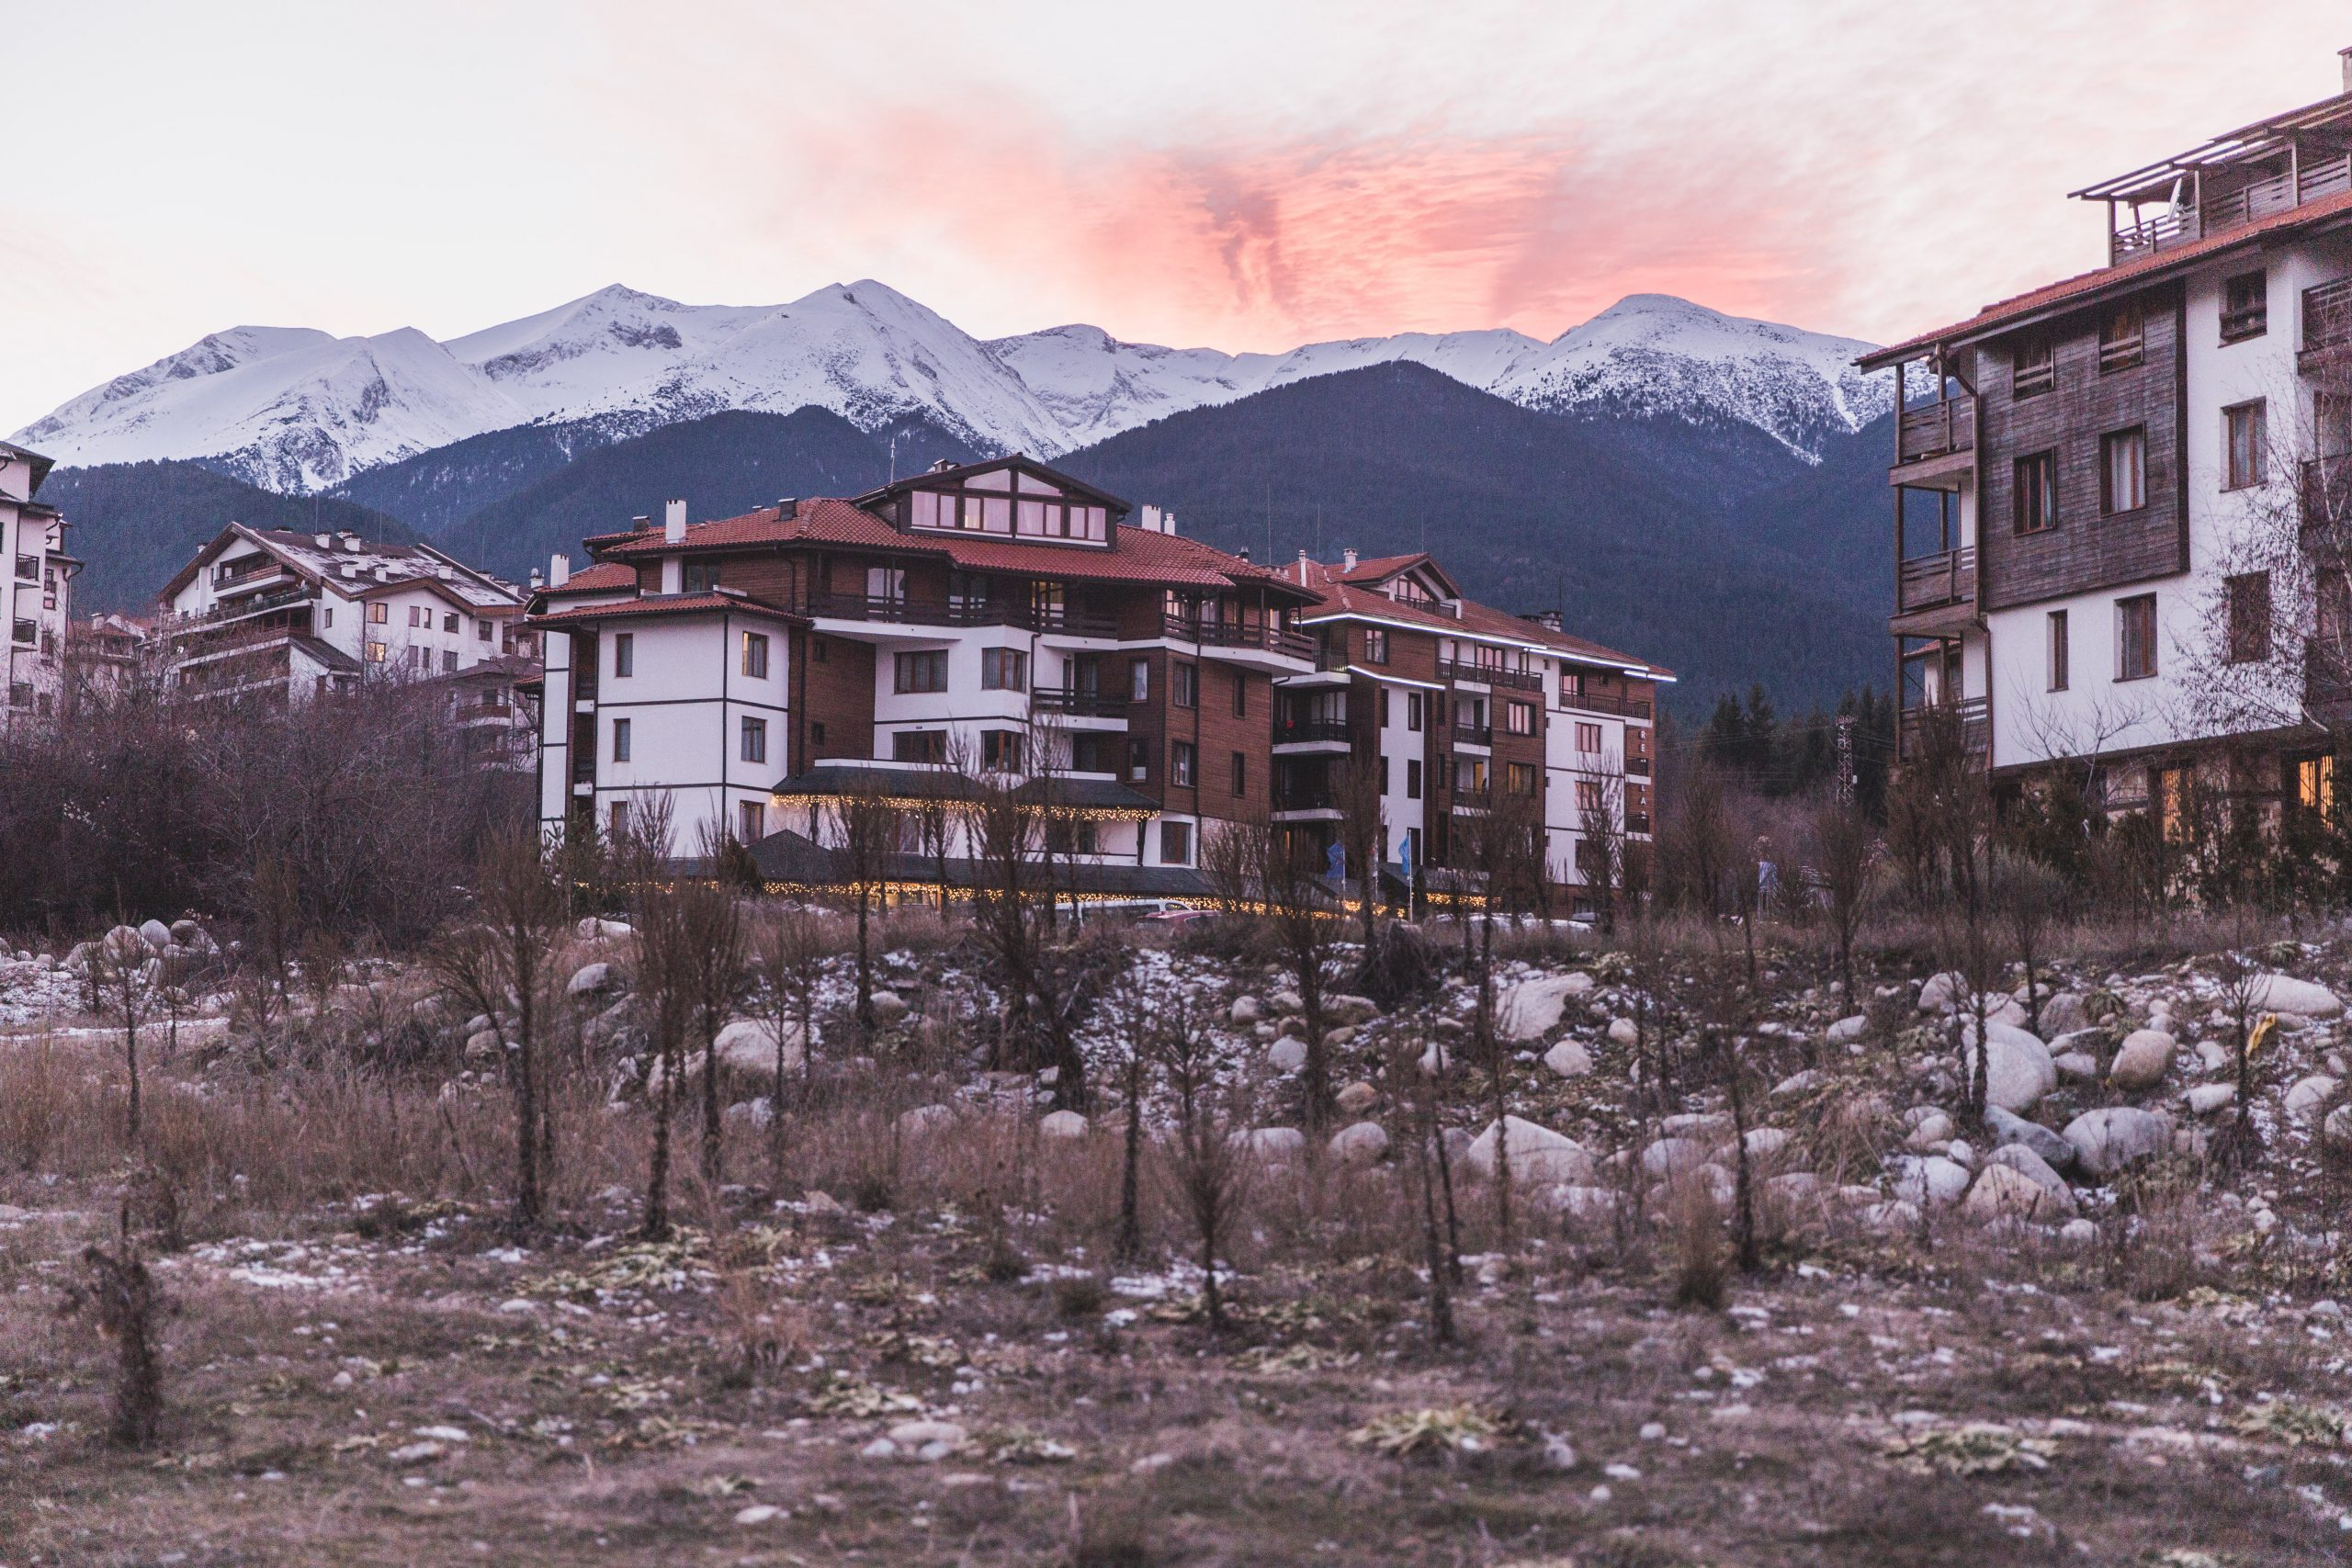 Bansko, Bulgaria at sunset.